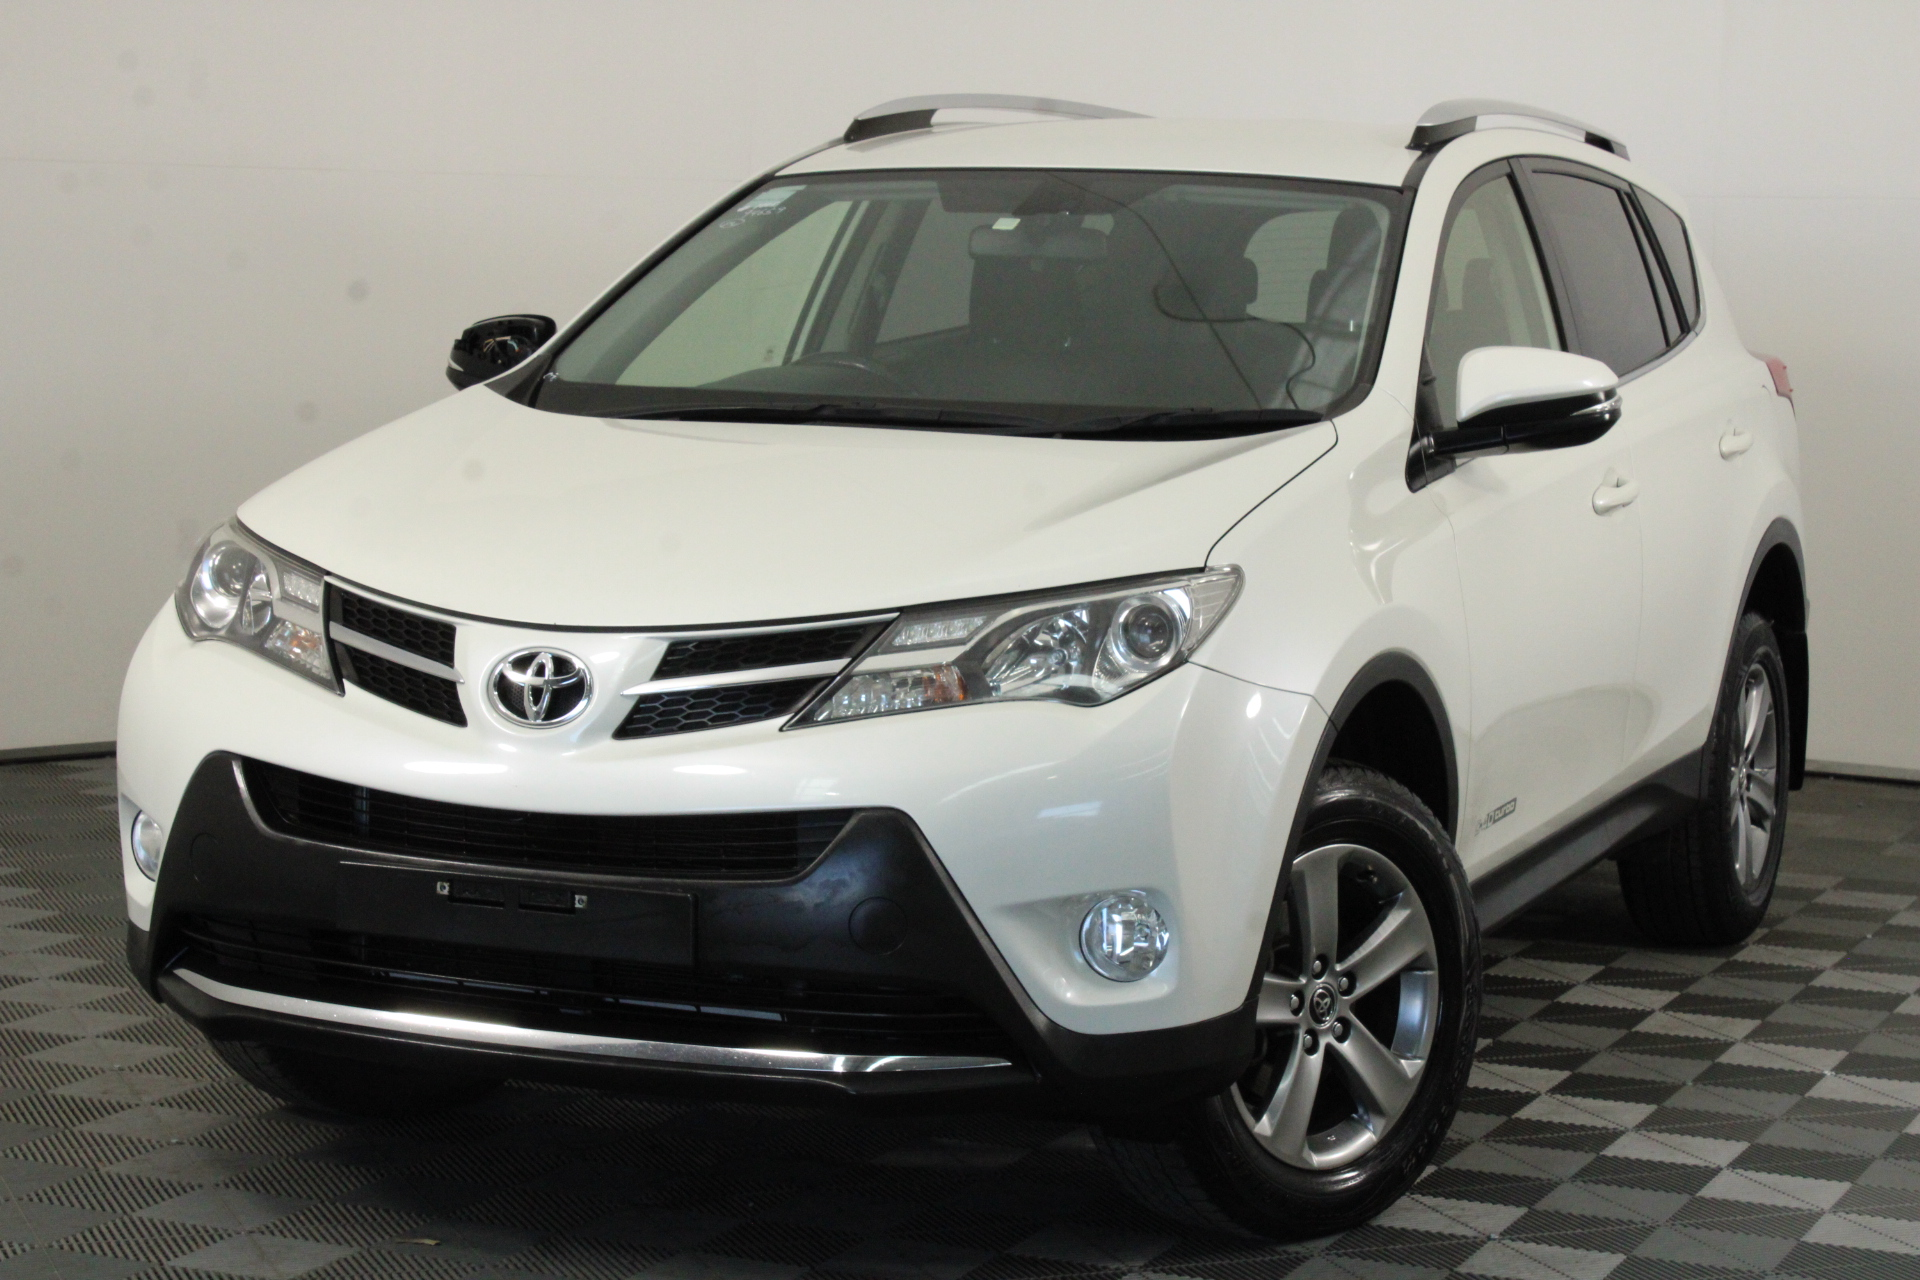 2015 Toyota Rav 4 AWD GXL ALA49R Turbo Diesel Automatic Wagon